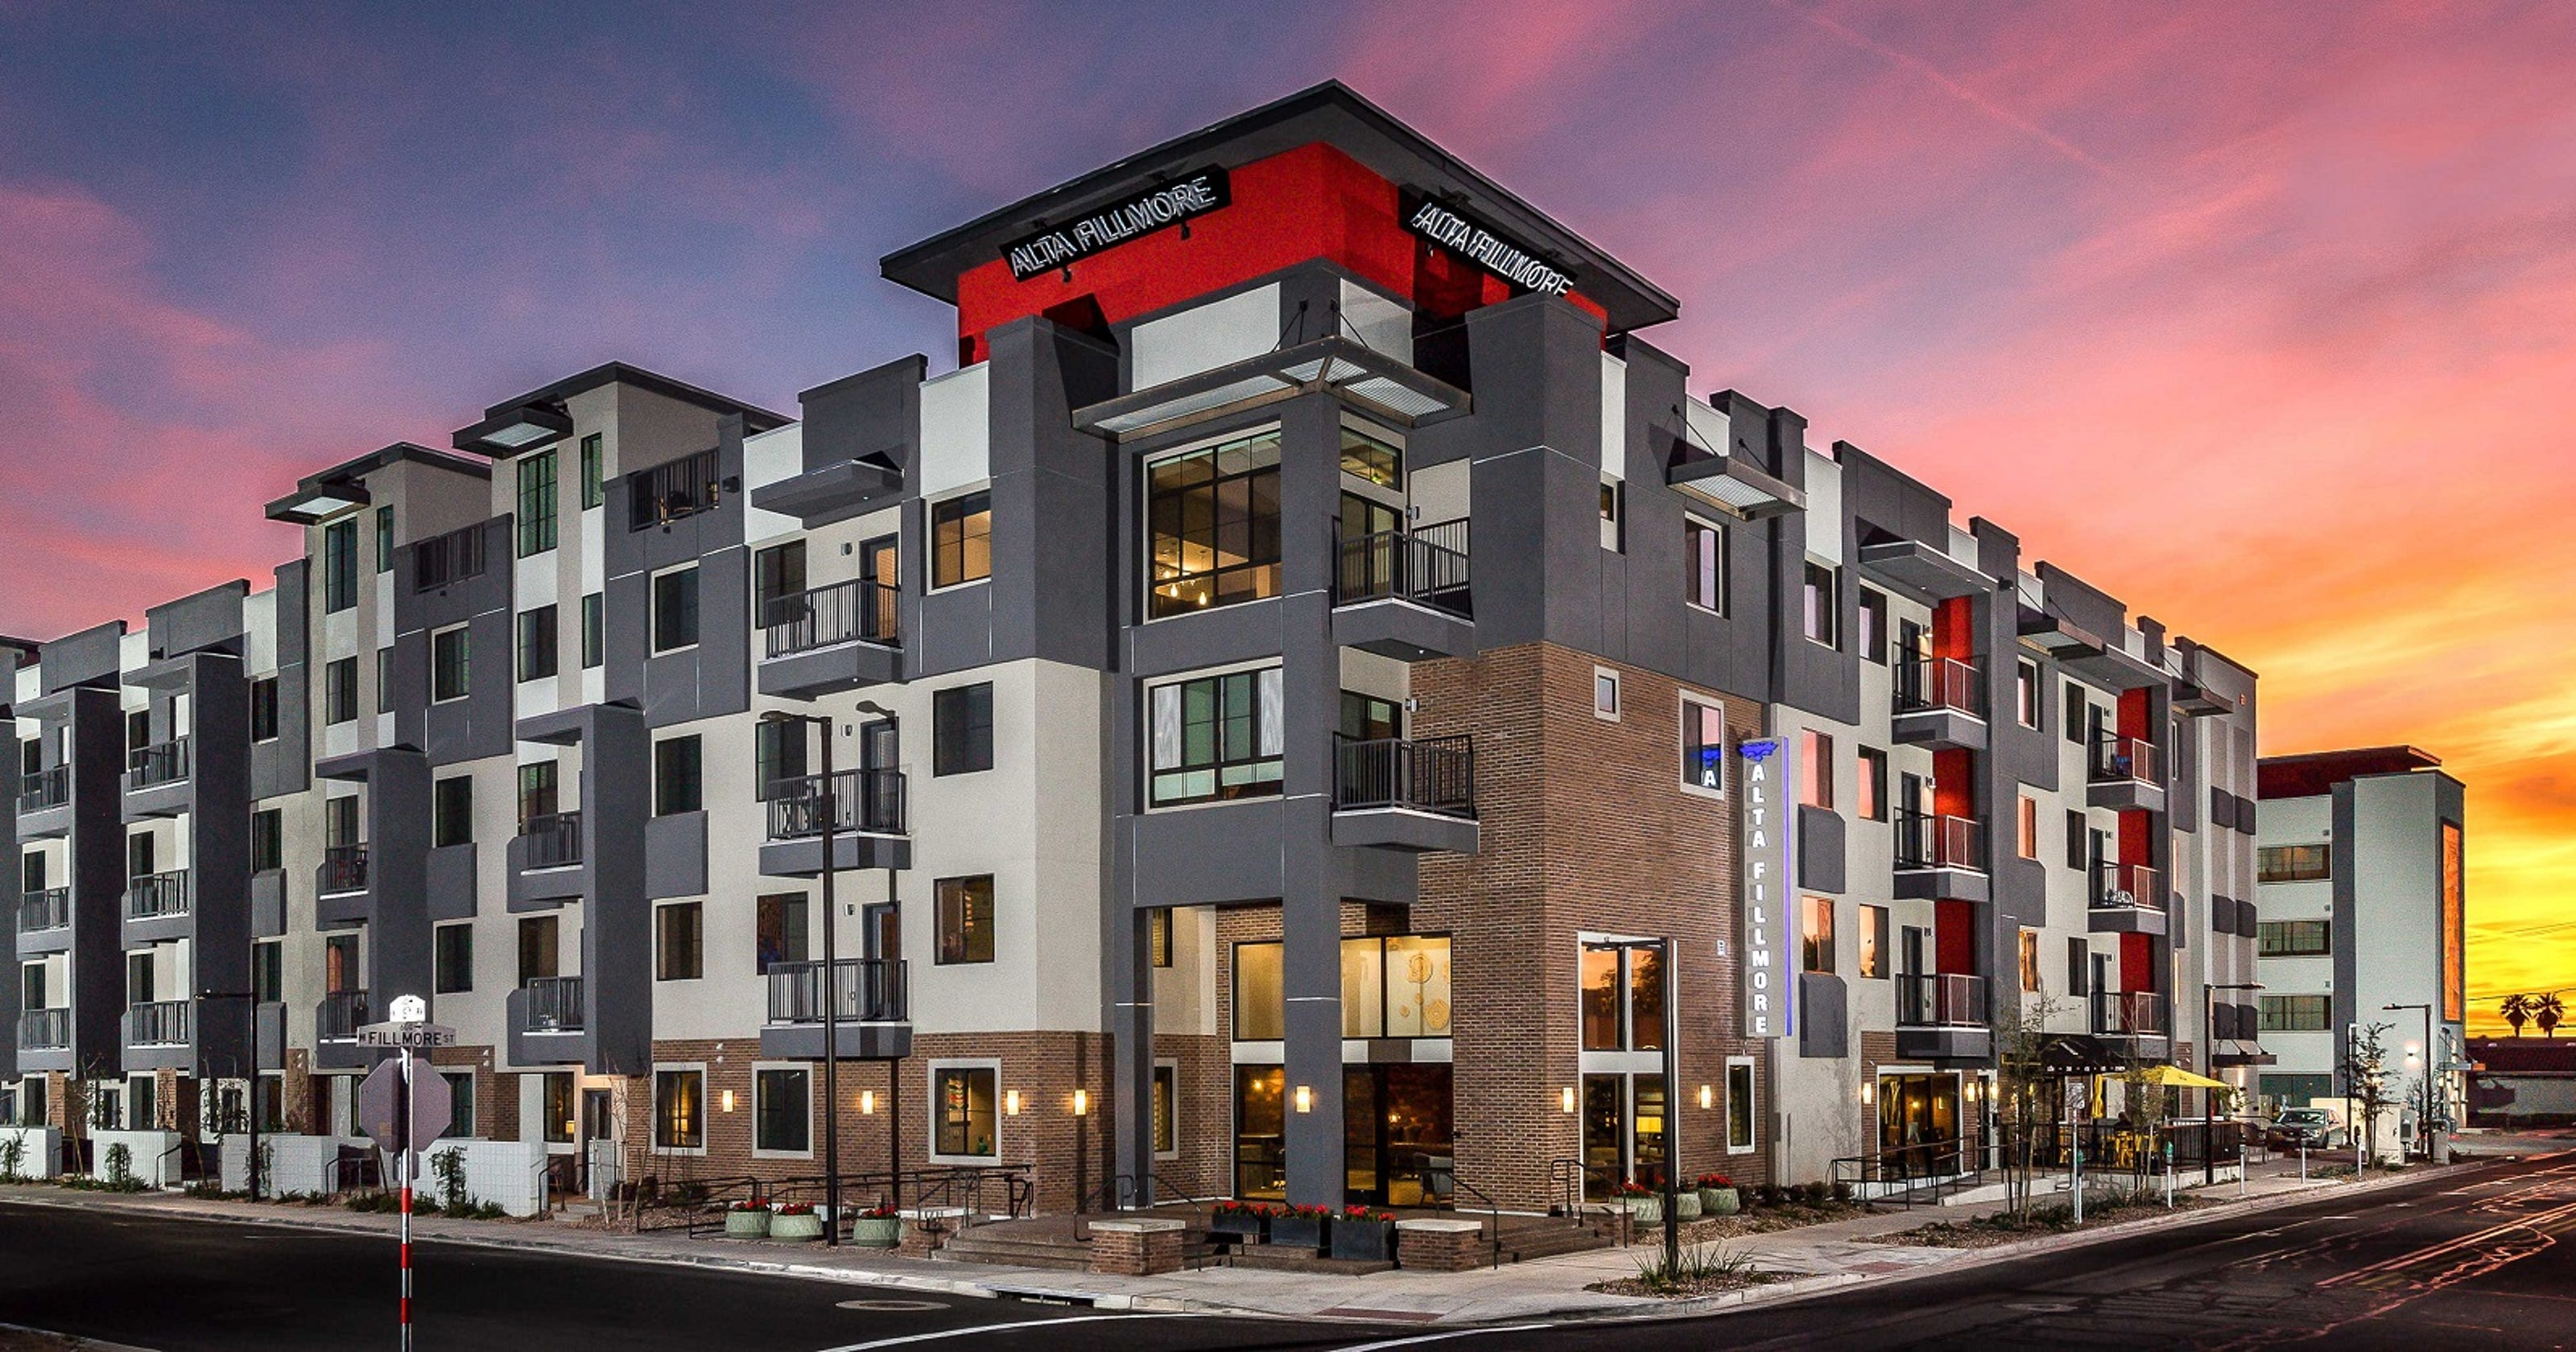 roosevelt row apartment complex in phoenix sells for record price - Fillmore Garden Apartments